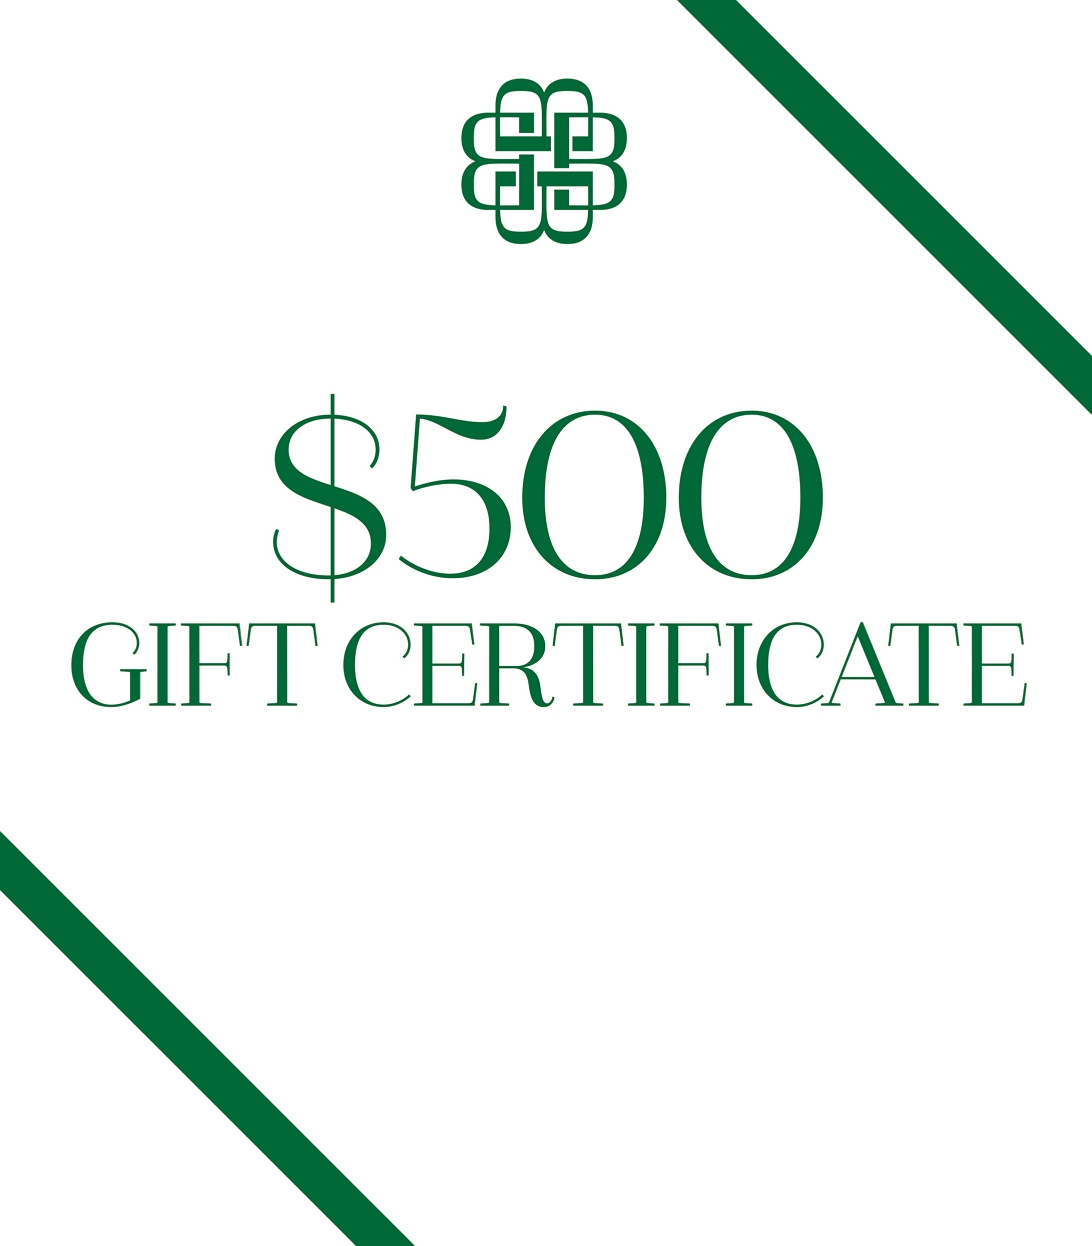 #82739 - Gift Certificate by BBSS-- $500 GIFT CERTIFICATE